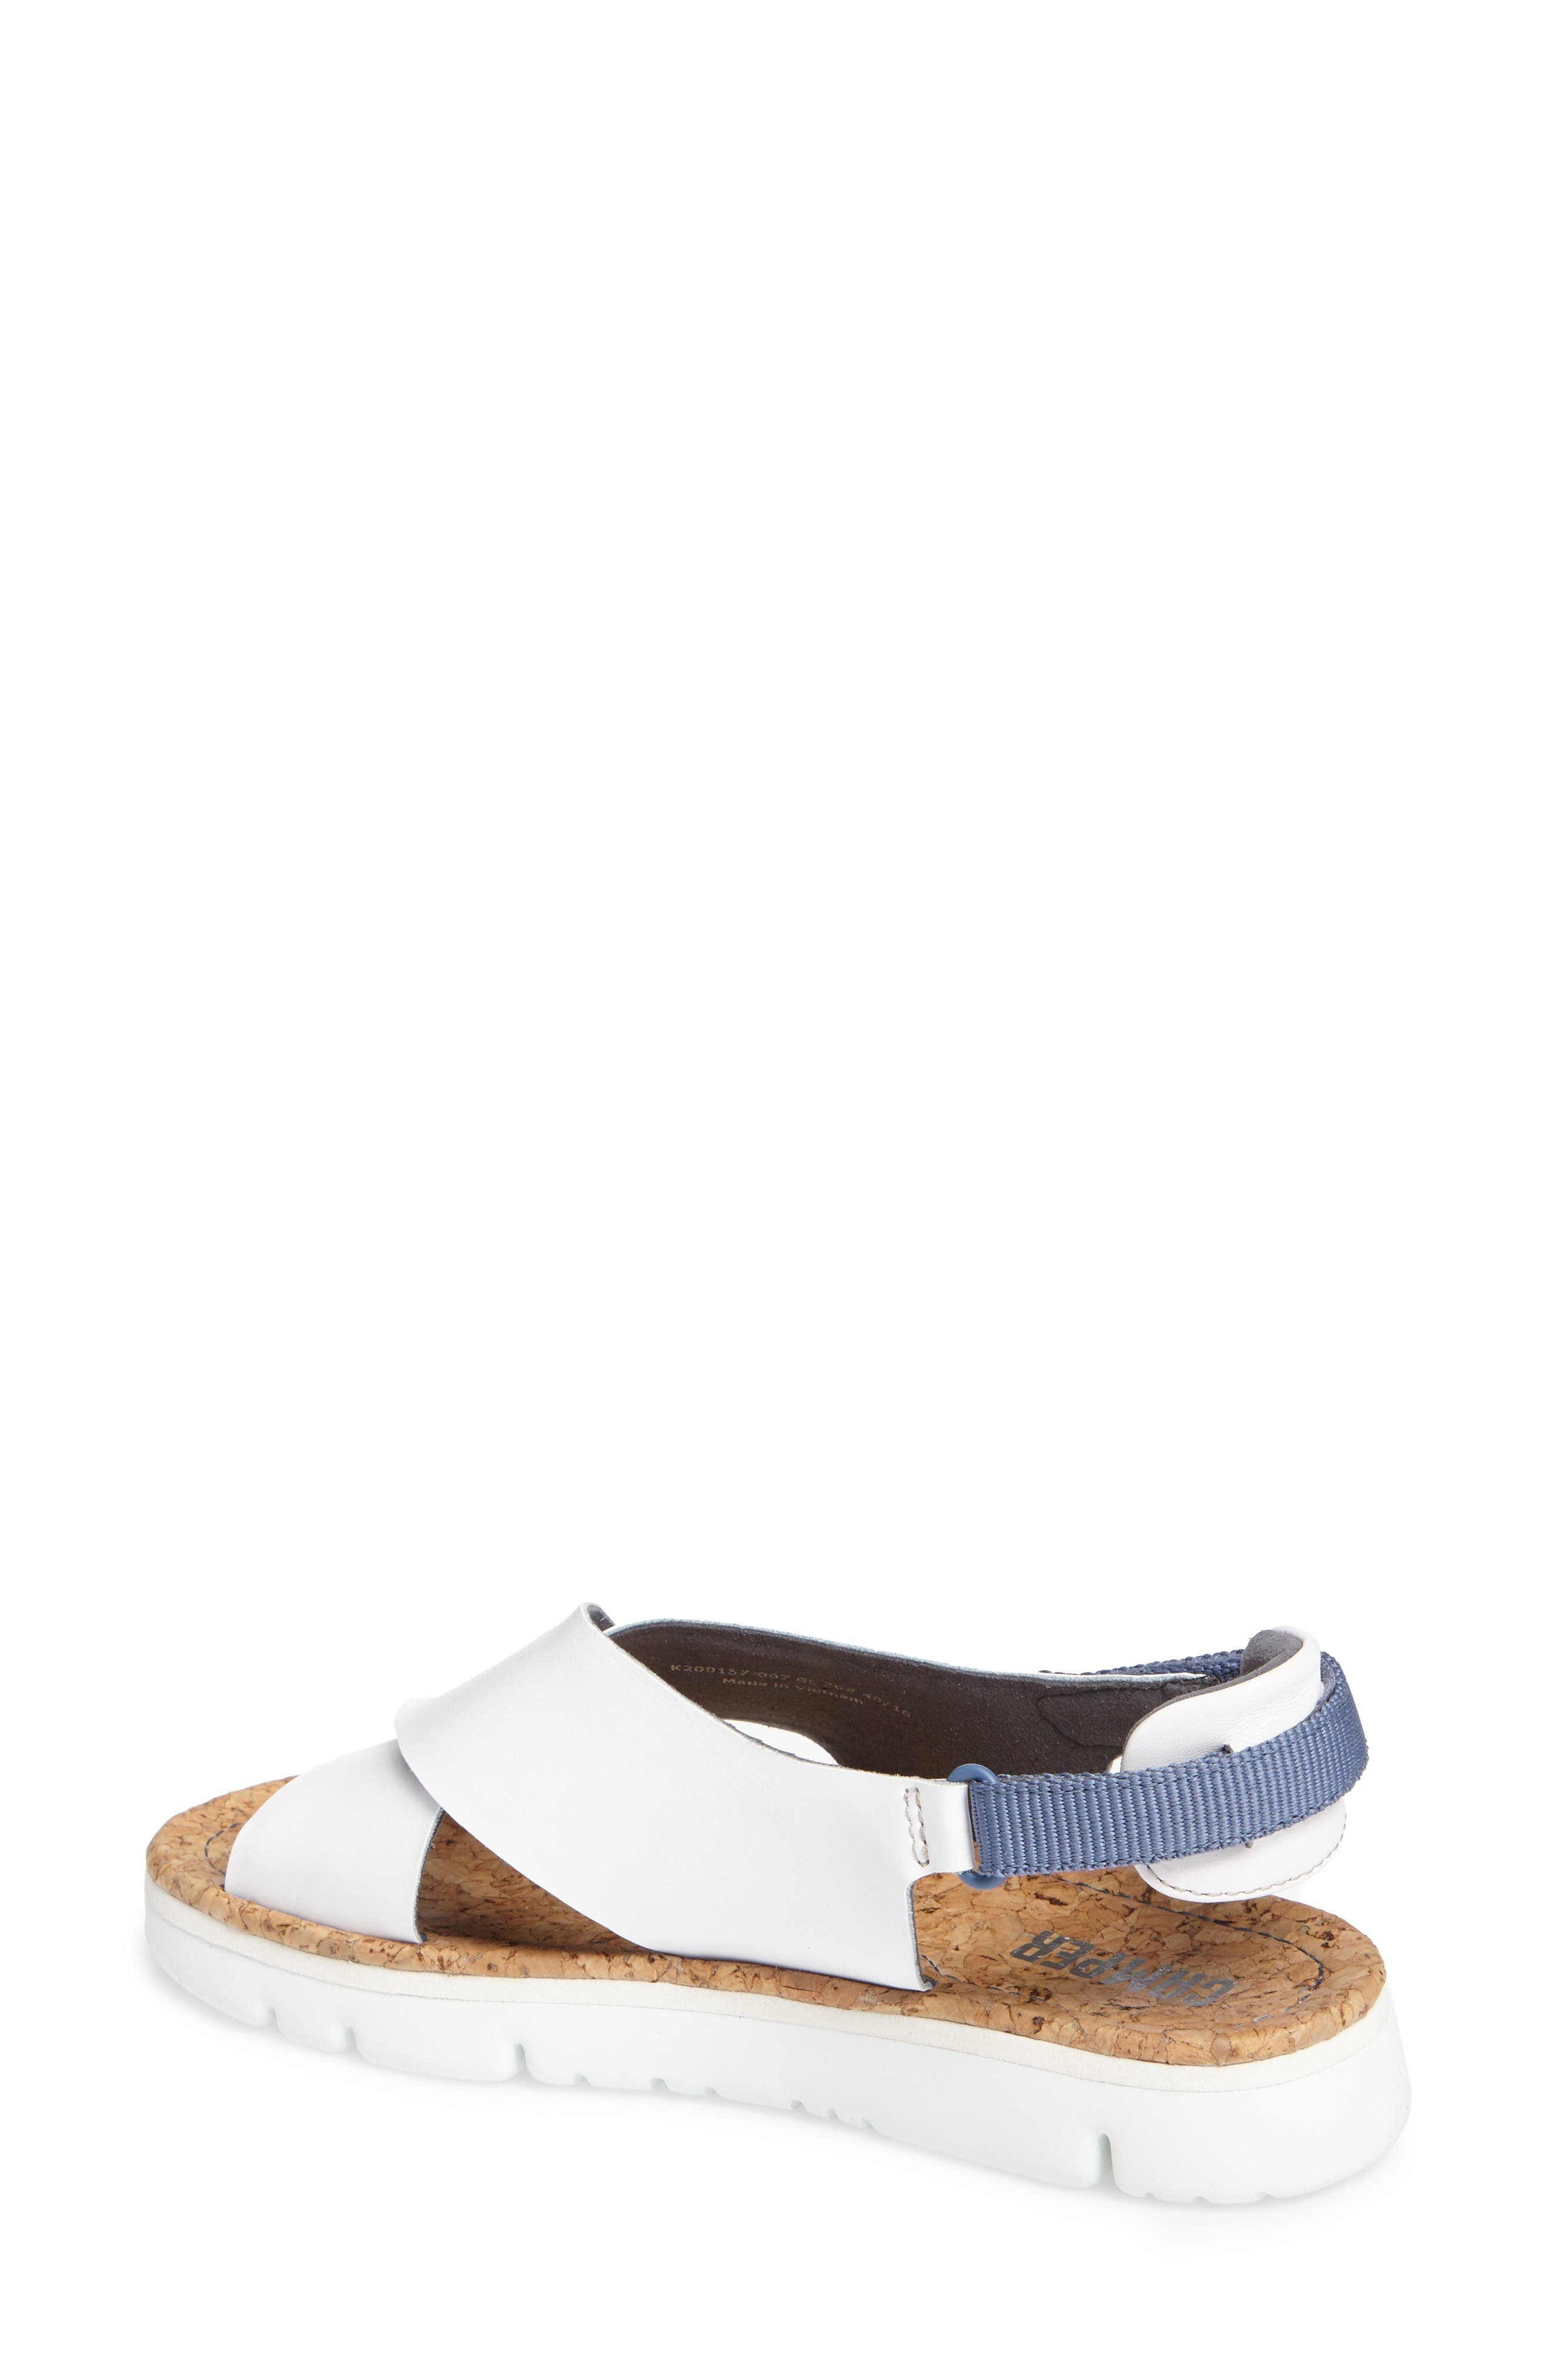 'Oruga' Crisscross Sandal,                             Alternate thumbnail 2, color,                             White Leather